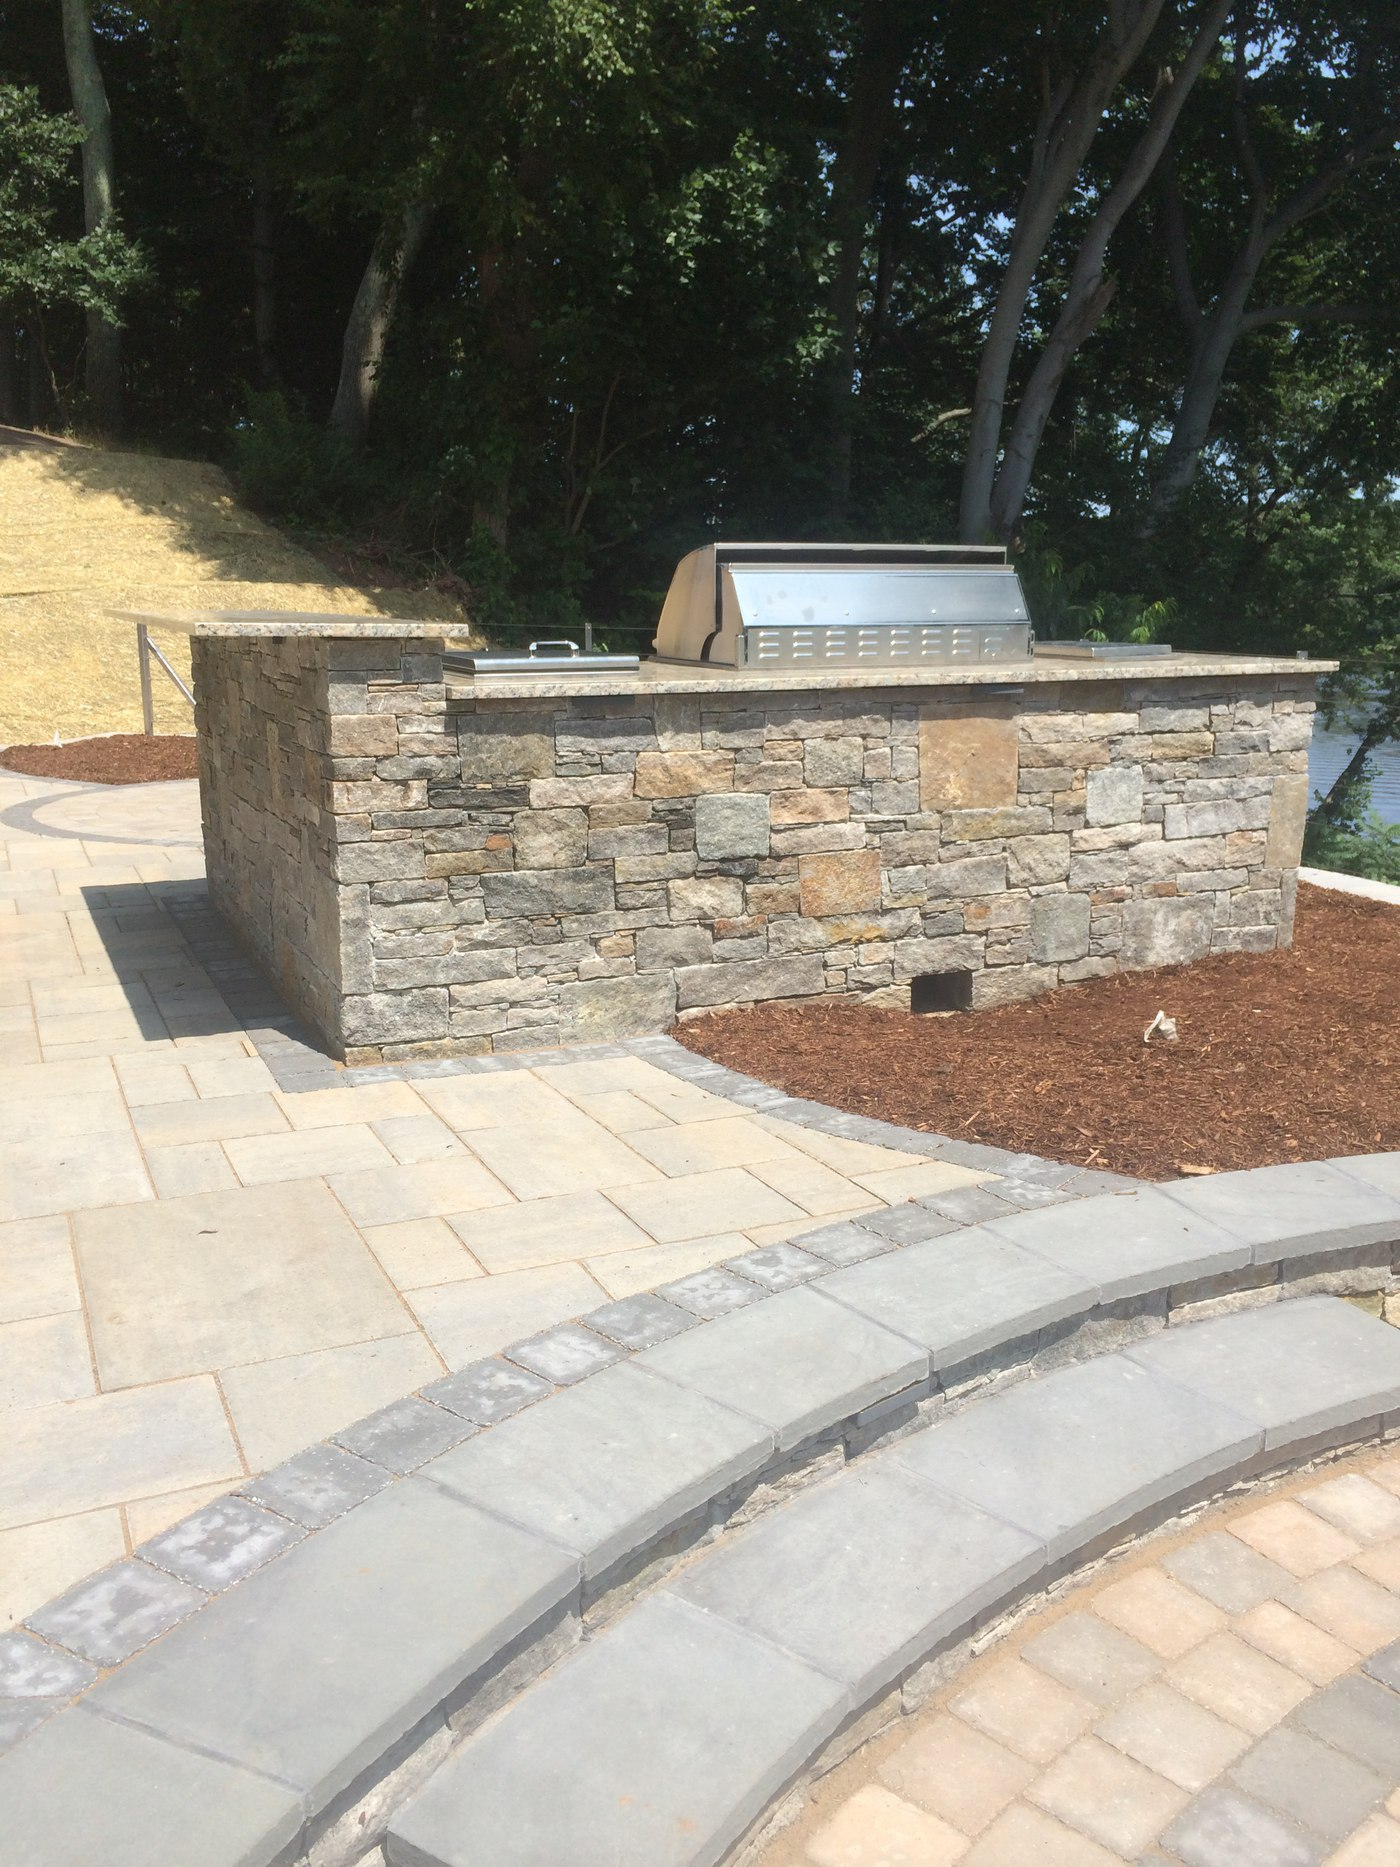 Natural Stone Outdoor Kitchen and Outdoor Bar with Stainless Steel Appliances by Bahler Brothers in Cromwell, CT